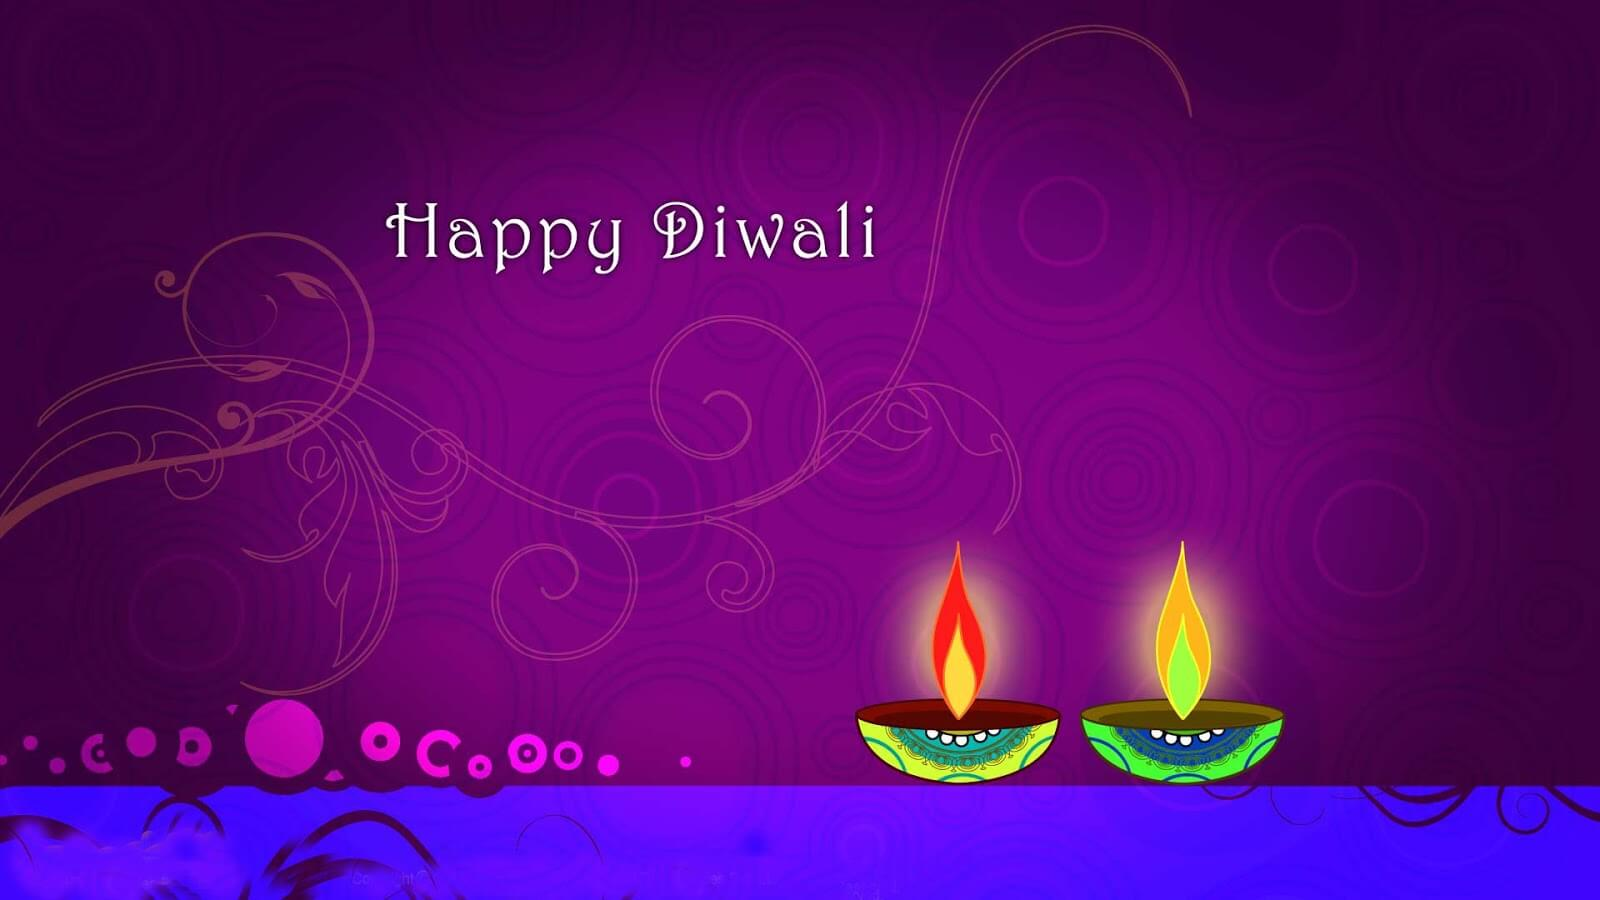 61 Diwali Wallpapers, Images And Pictures For Free